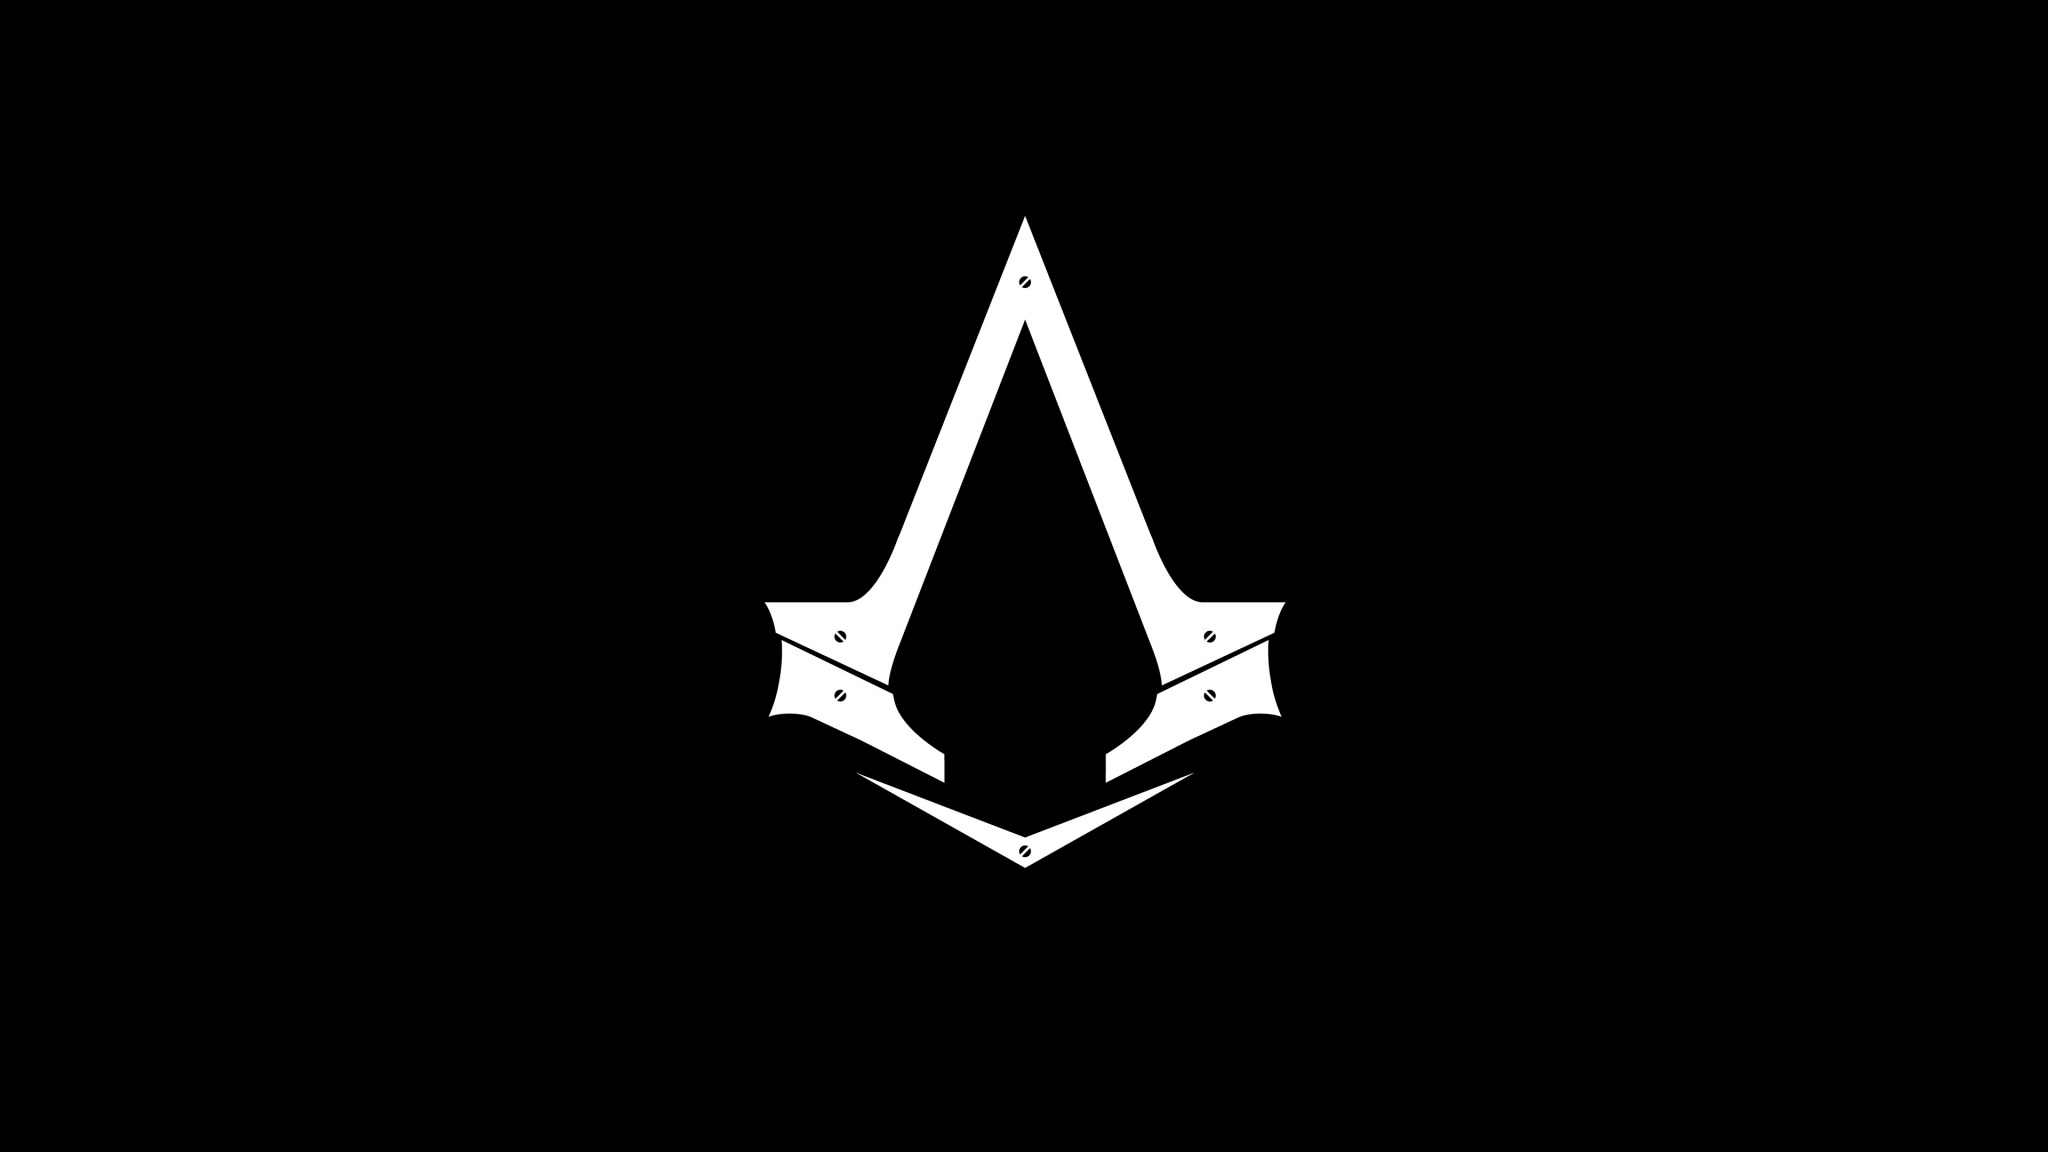 Assassins Creed Wallpaper Hd 1080p Assassin S Creed Syndicate Hd Wallpapers Free Download